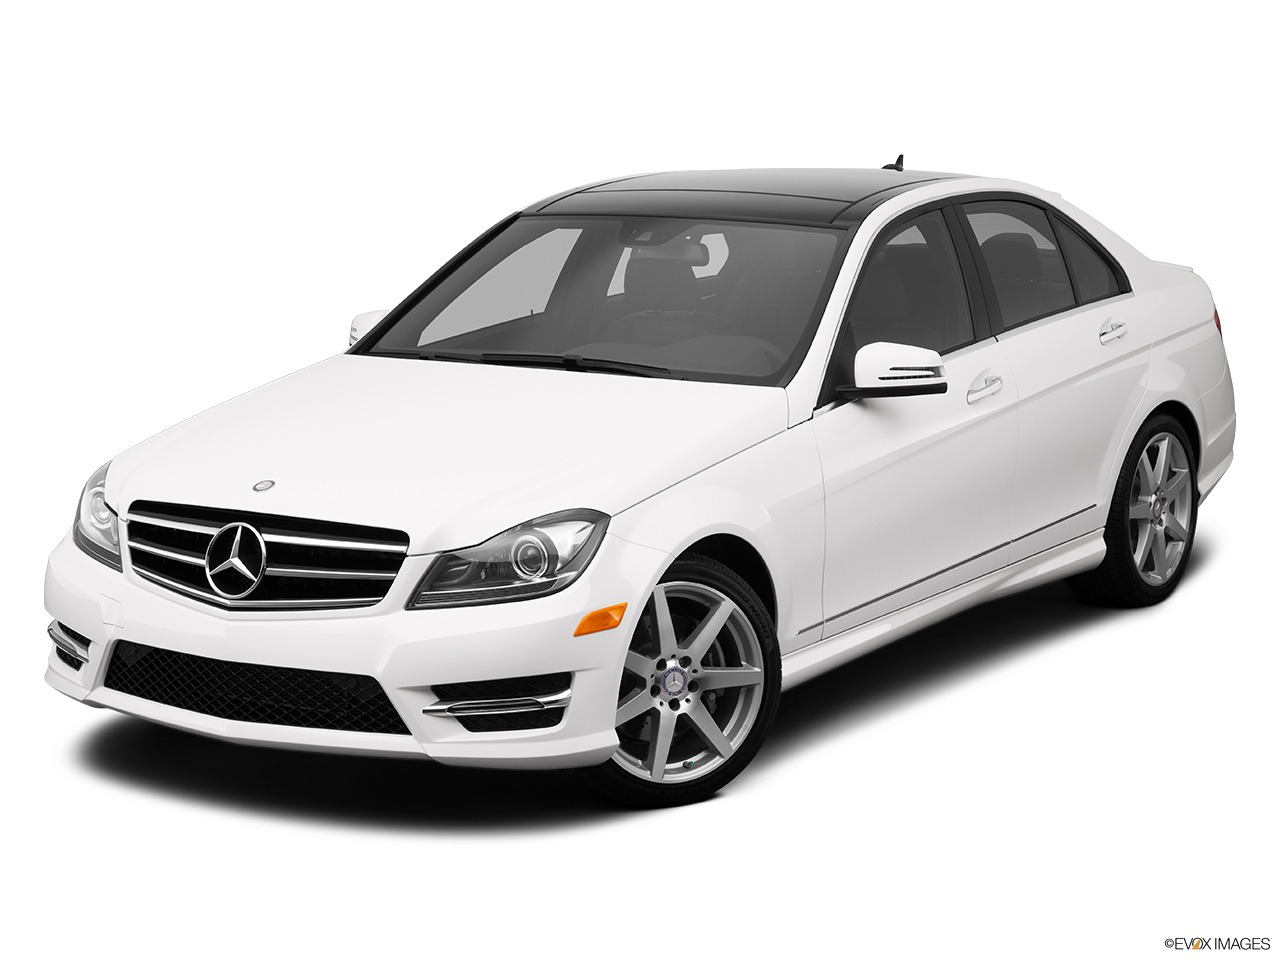 2014 mercedes benz c class sedan c300 sport 4matic for Mercedes benz c300 sport 4matic